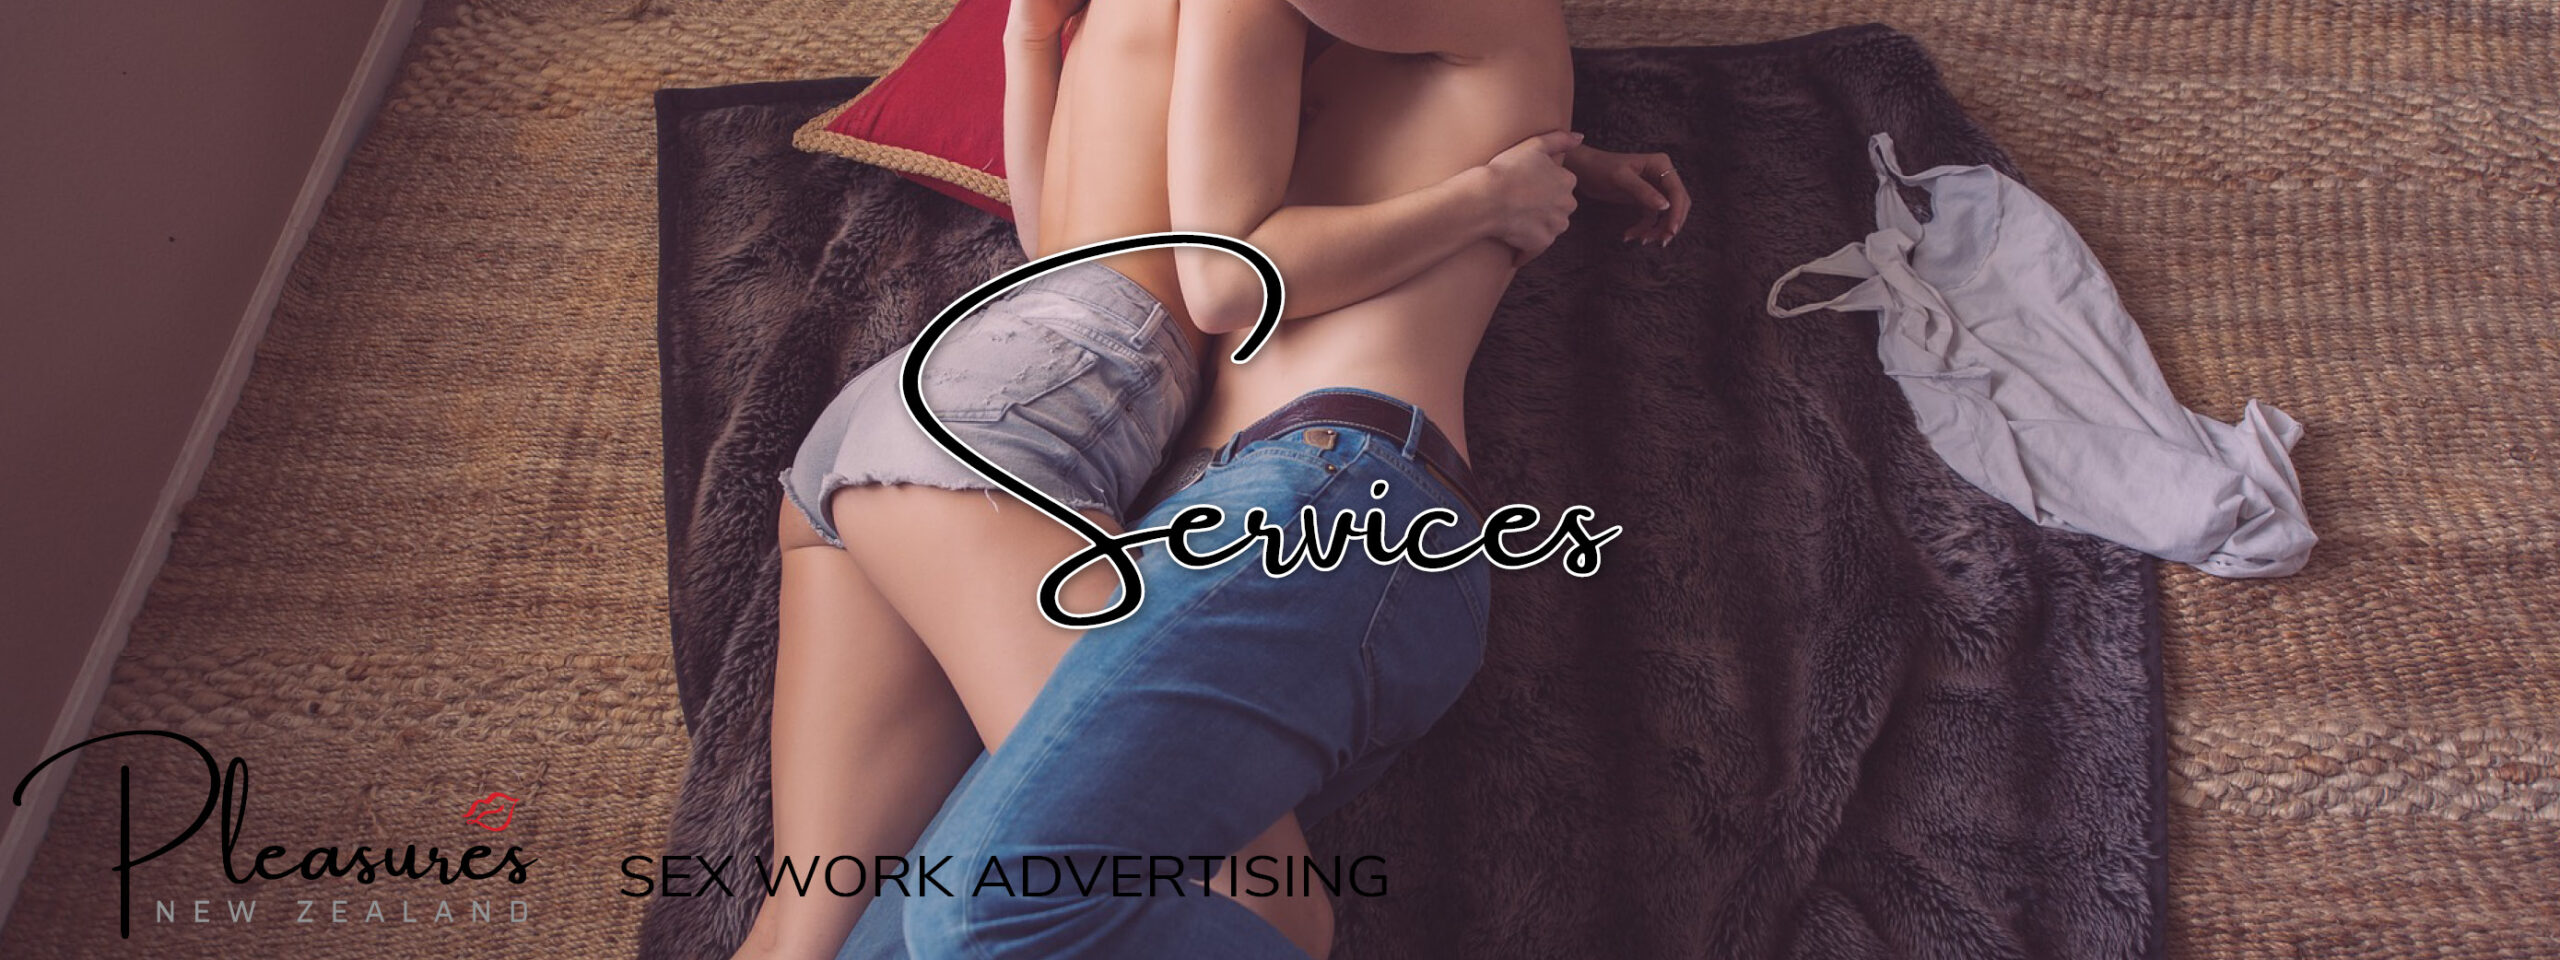 A man and a woman lying on a blanket on the floor, embracing each other, legs entwined, both topless. Sew Work Advertising Services Banner. NZ Pleasures.